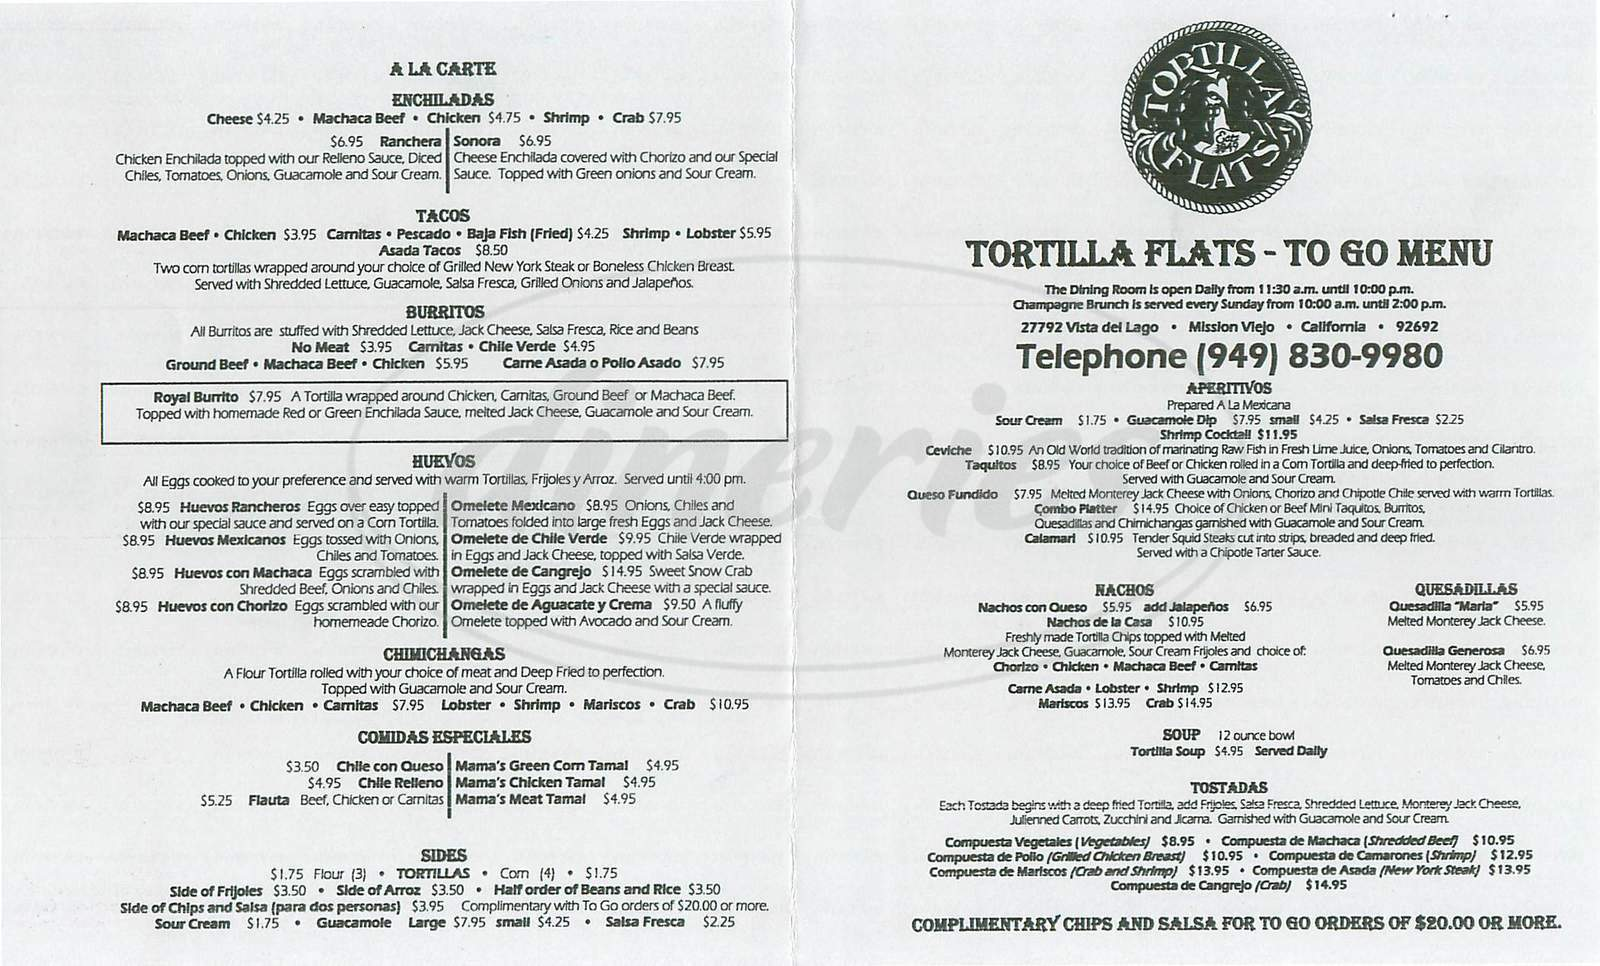 menu for Tortilla Flats